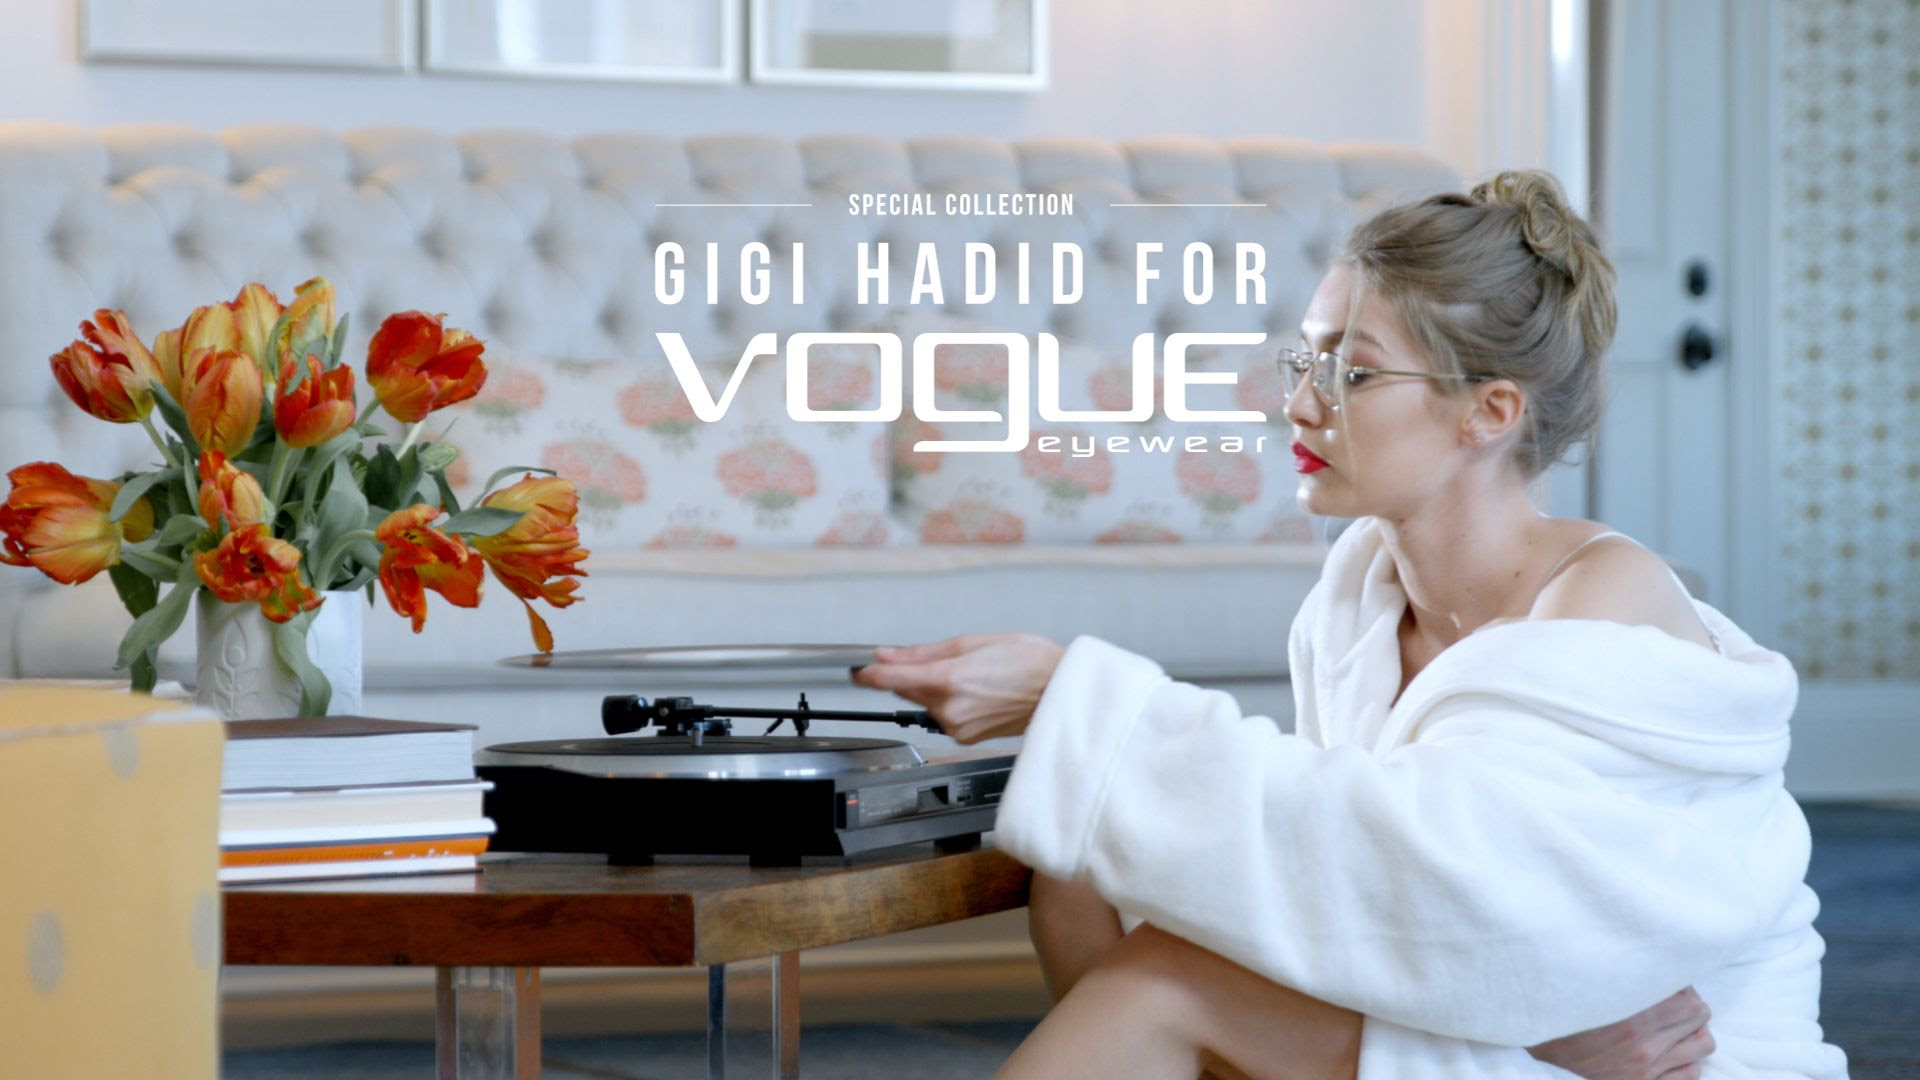 Vogue VO4015 | Gigi Hadid banner for Vogue Gigi Hadid Collection Vogue VO4015 | EyeWearThese.com